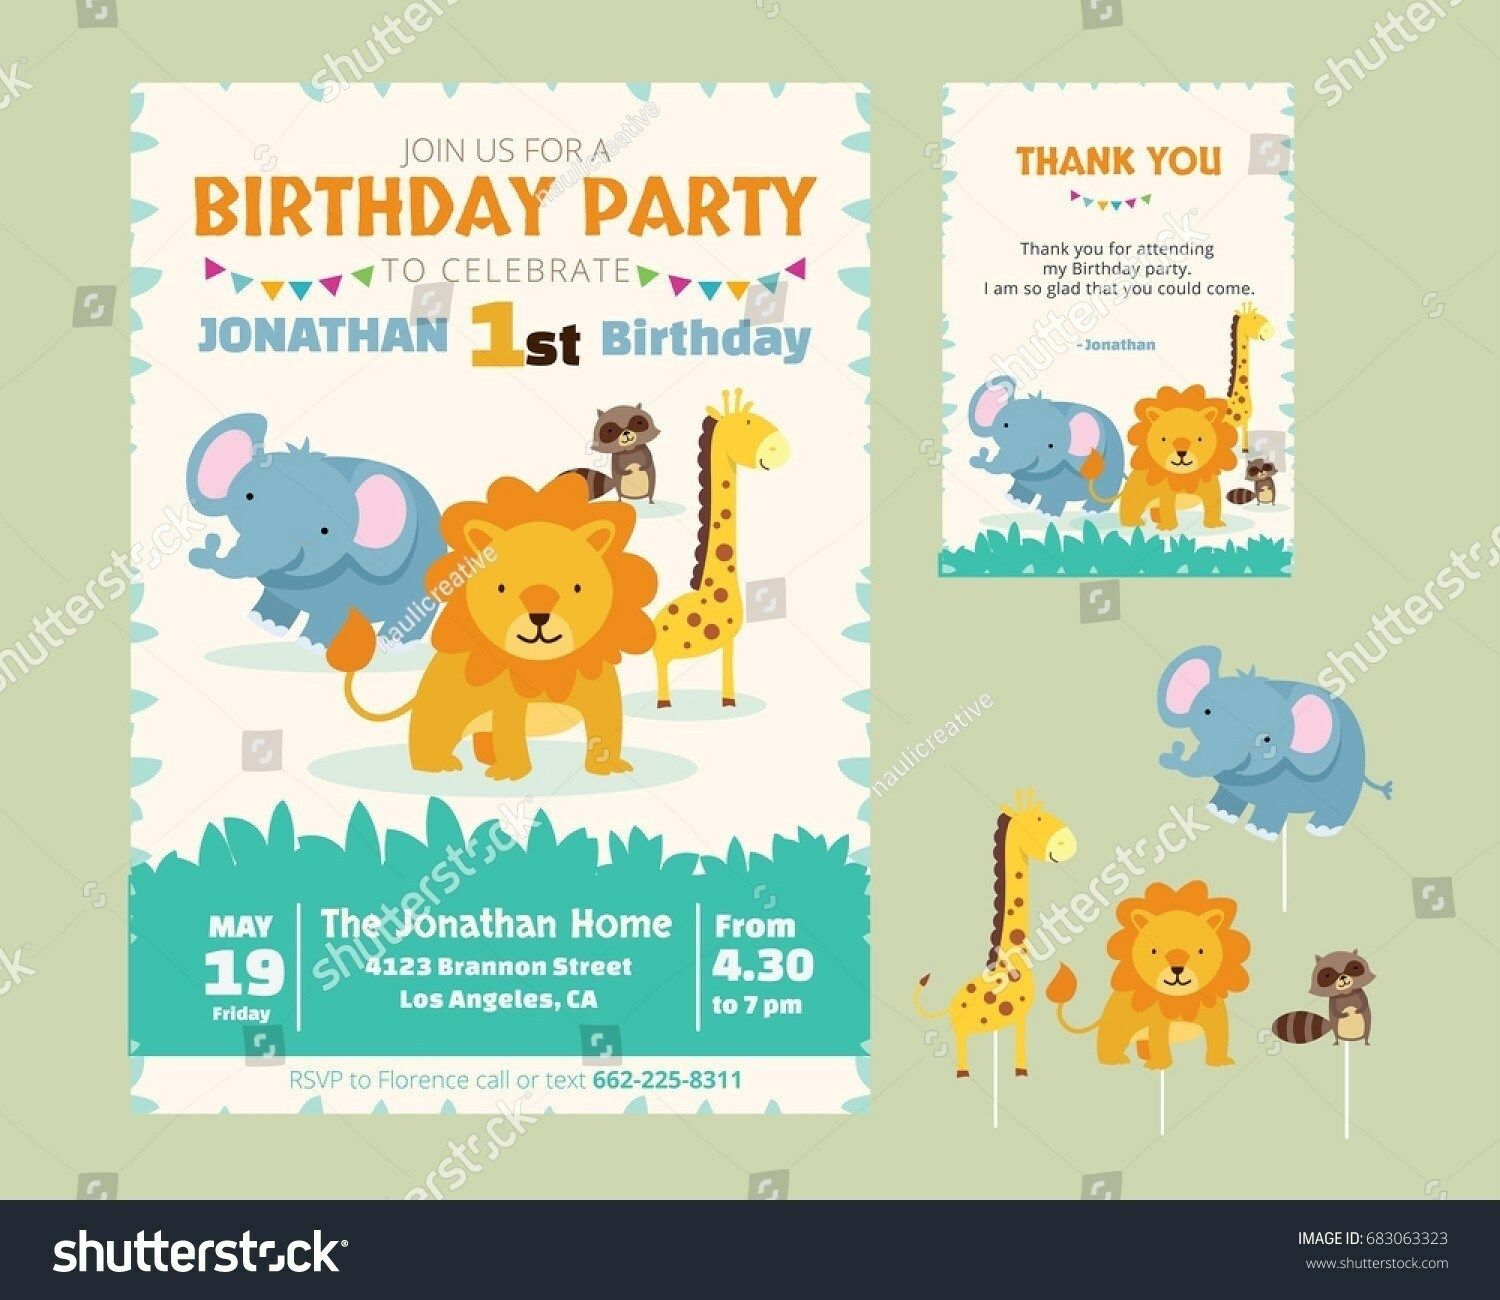 evite app birthday invitation card template cheap party